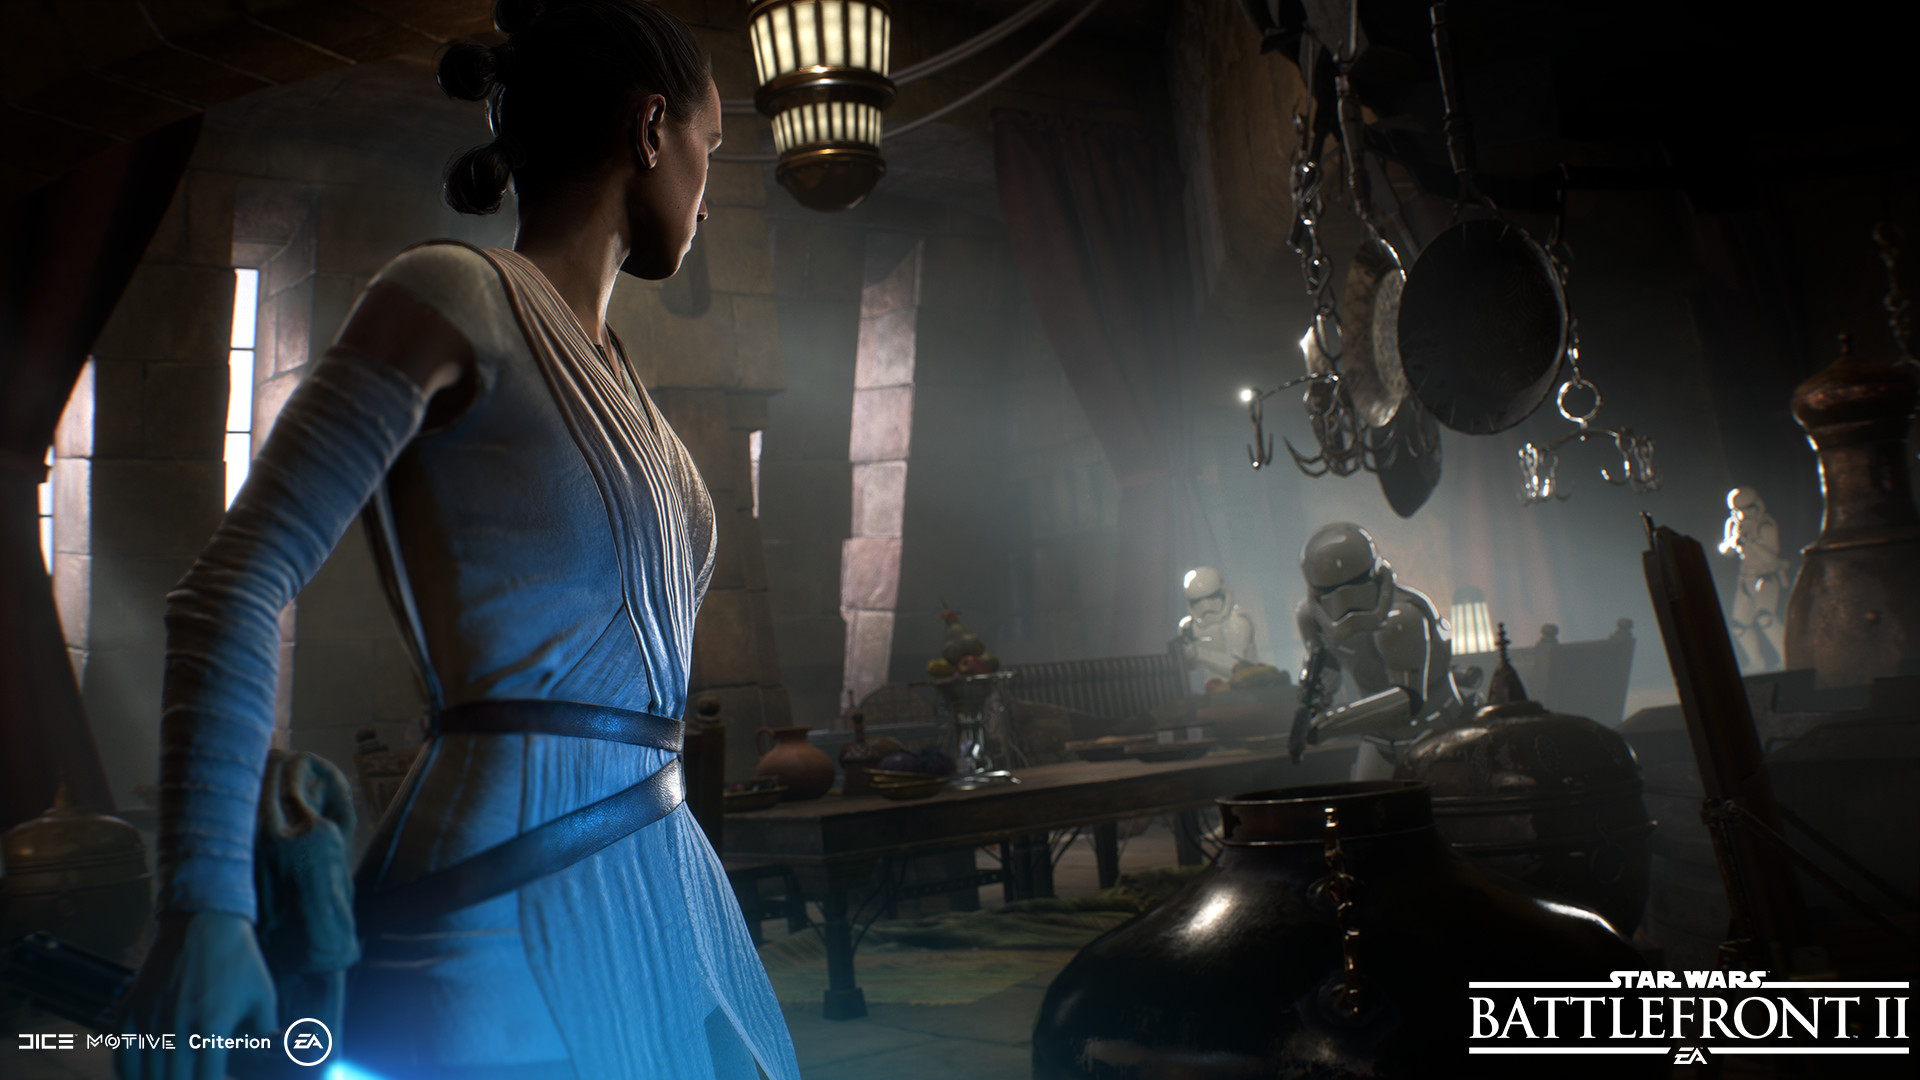 You Can Play Star Wars Battlefront 2 In Vr Vr News Games And